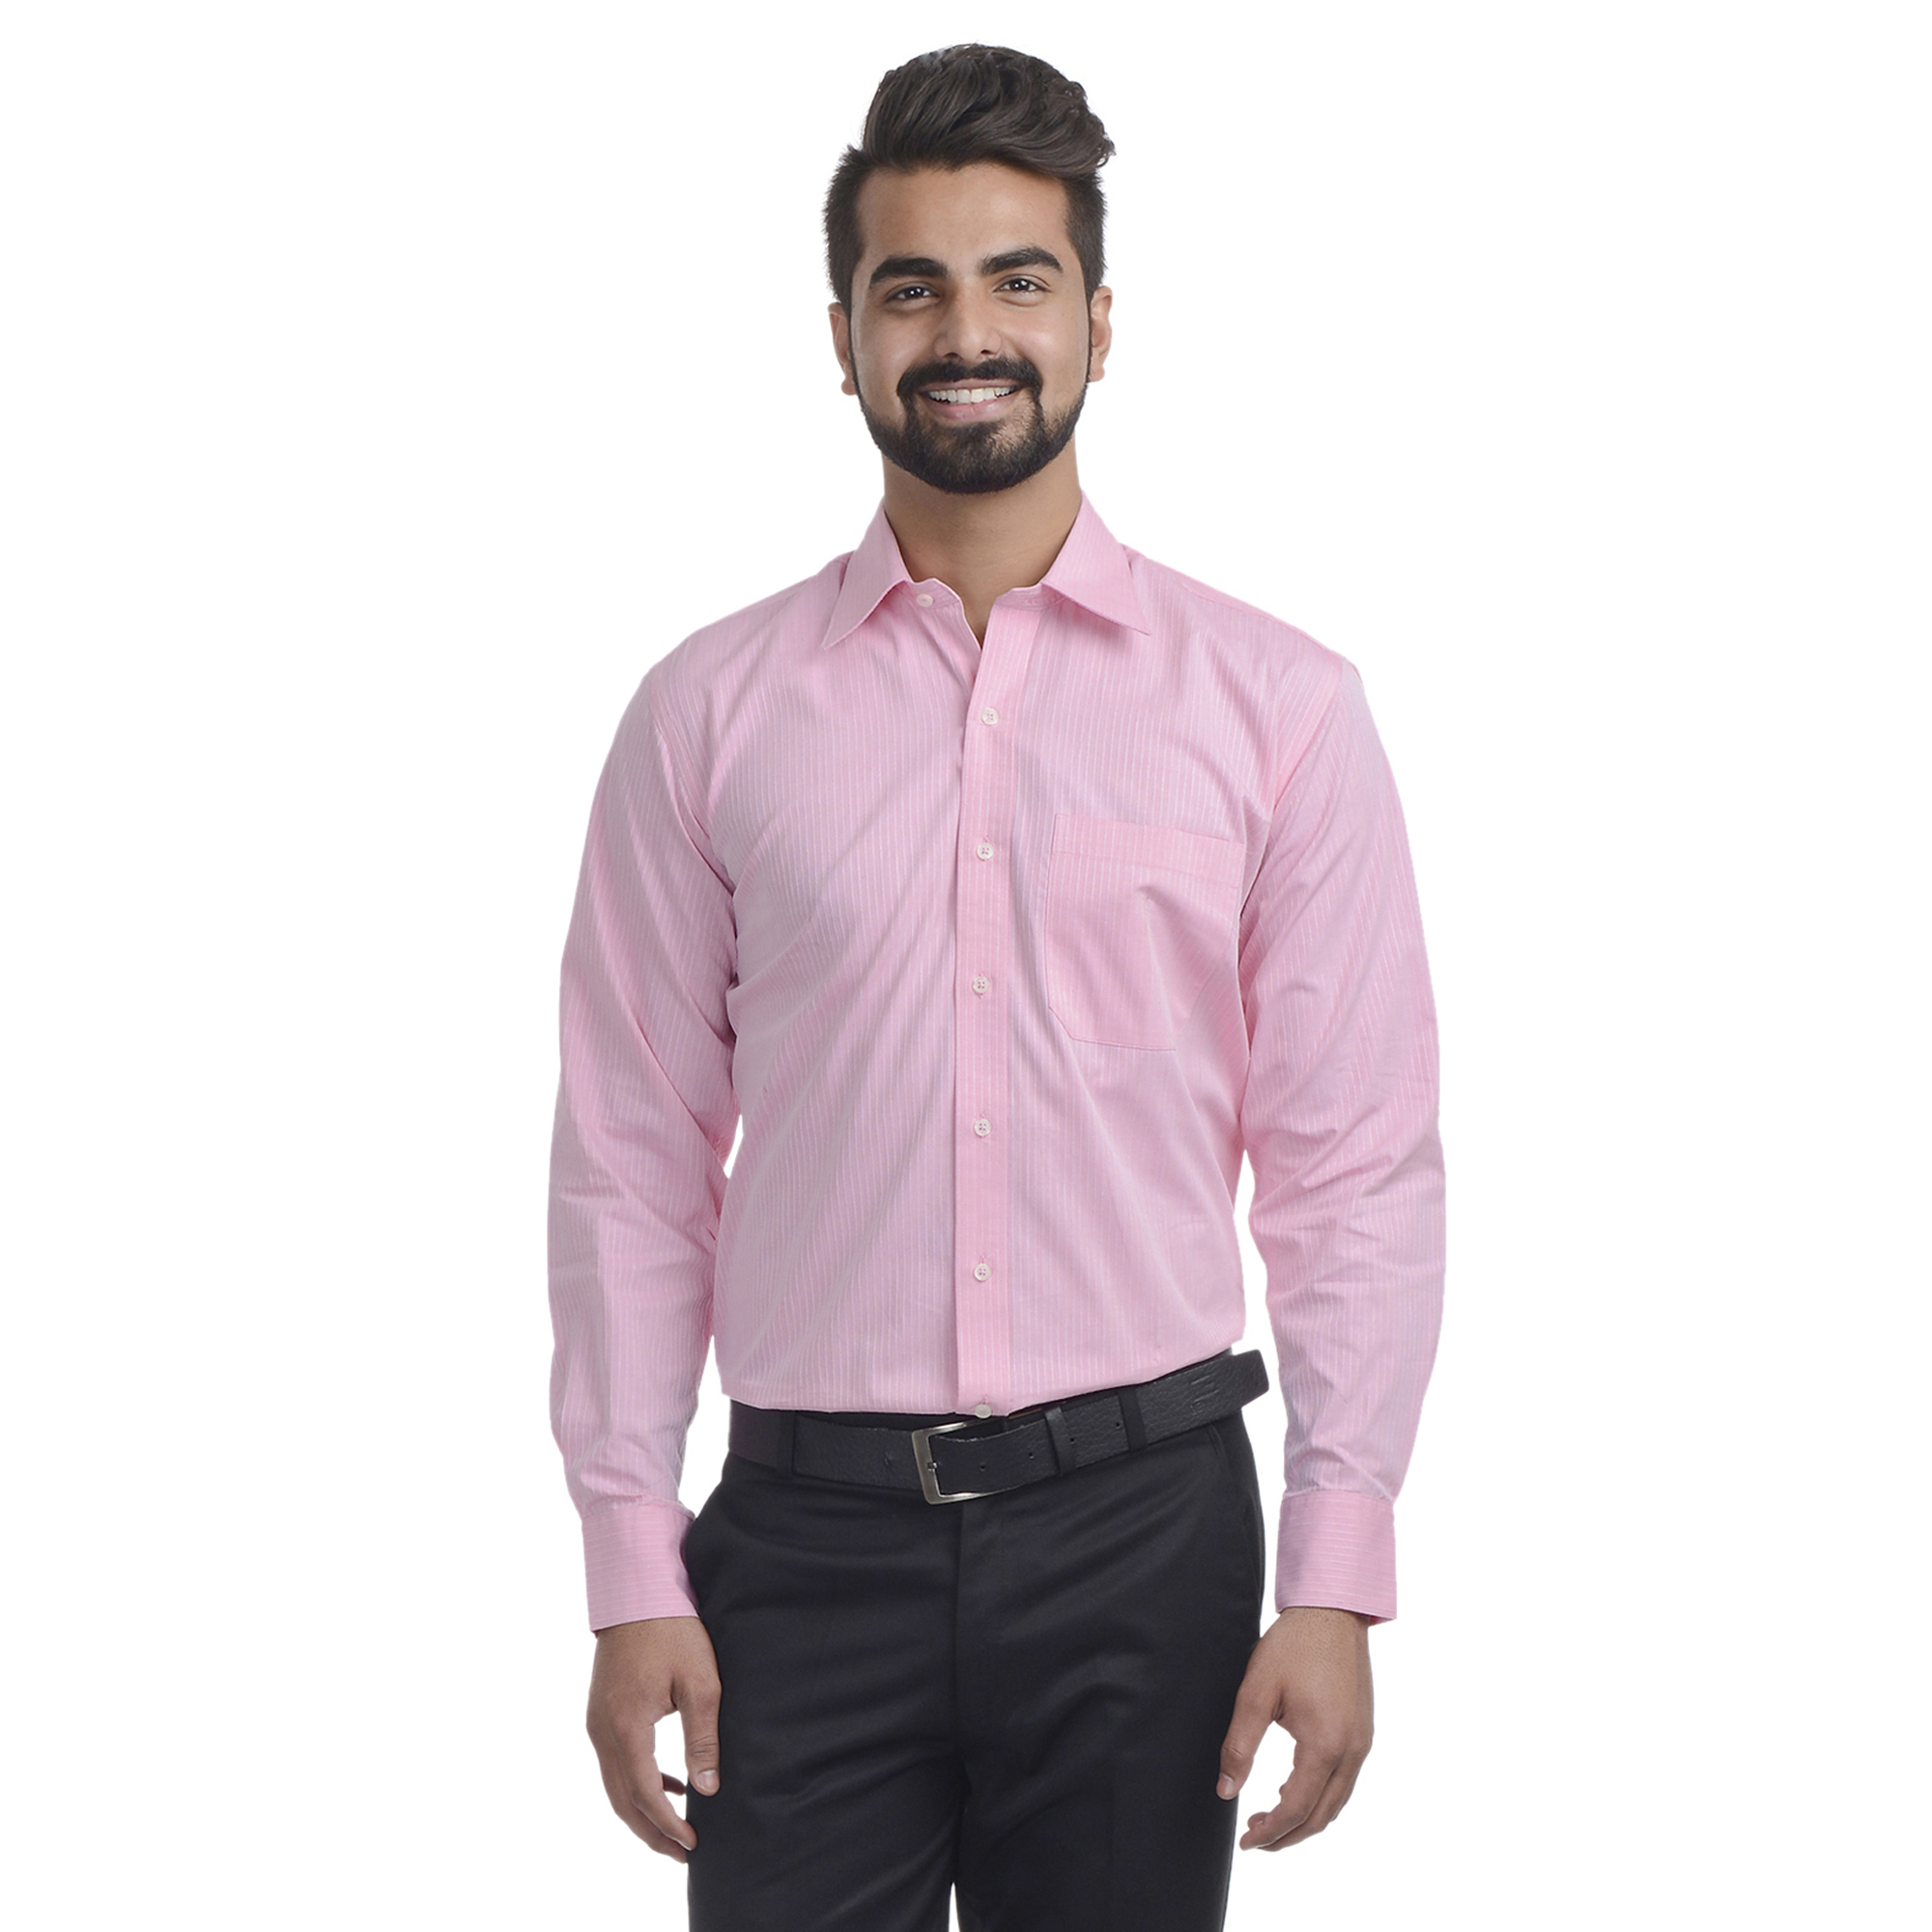 Pink Shirts for Men - Formal Shirts by My Ulterior